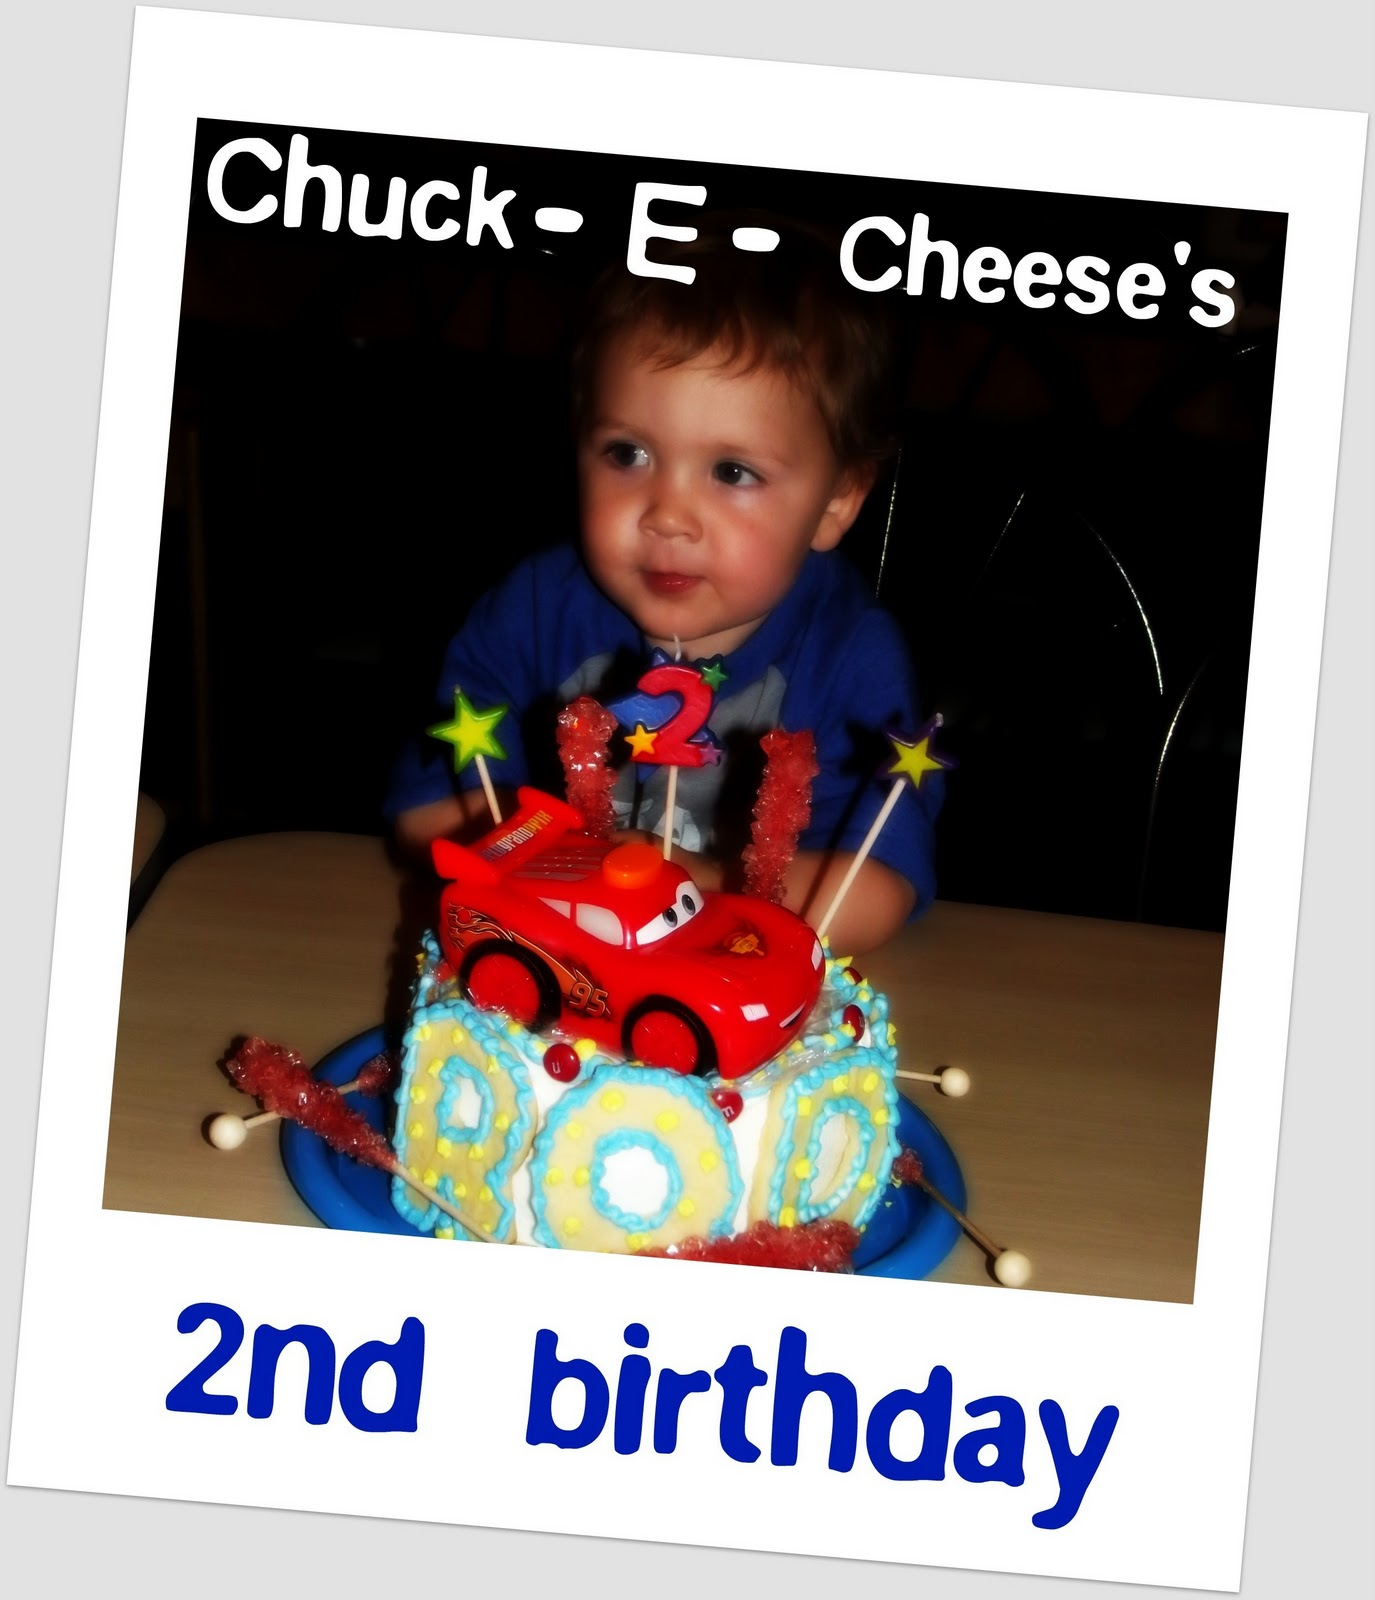 Stories From The Stokes': Family Birthday Party At Chuck E